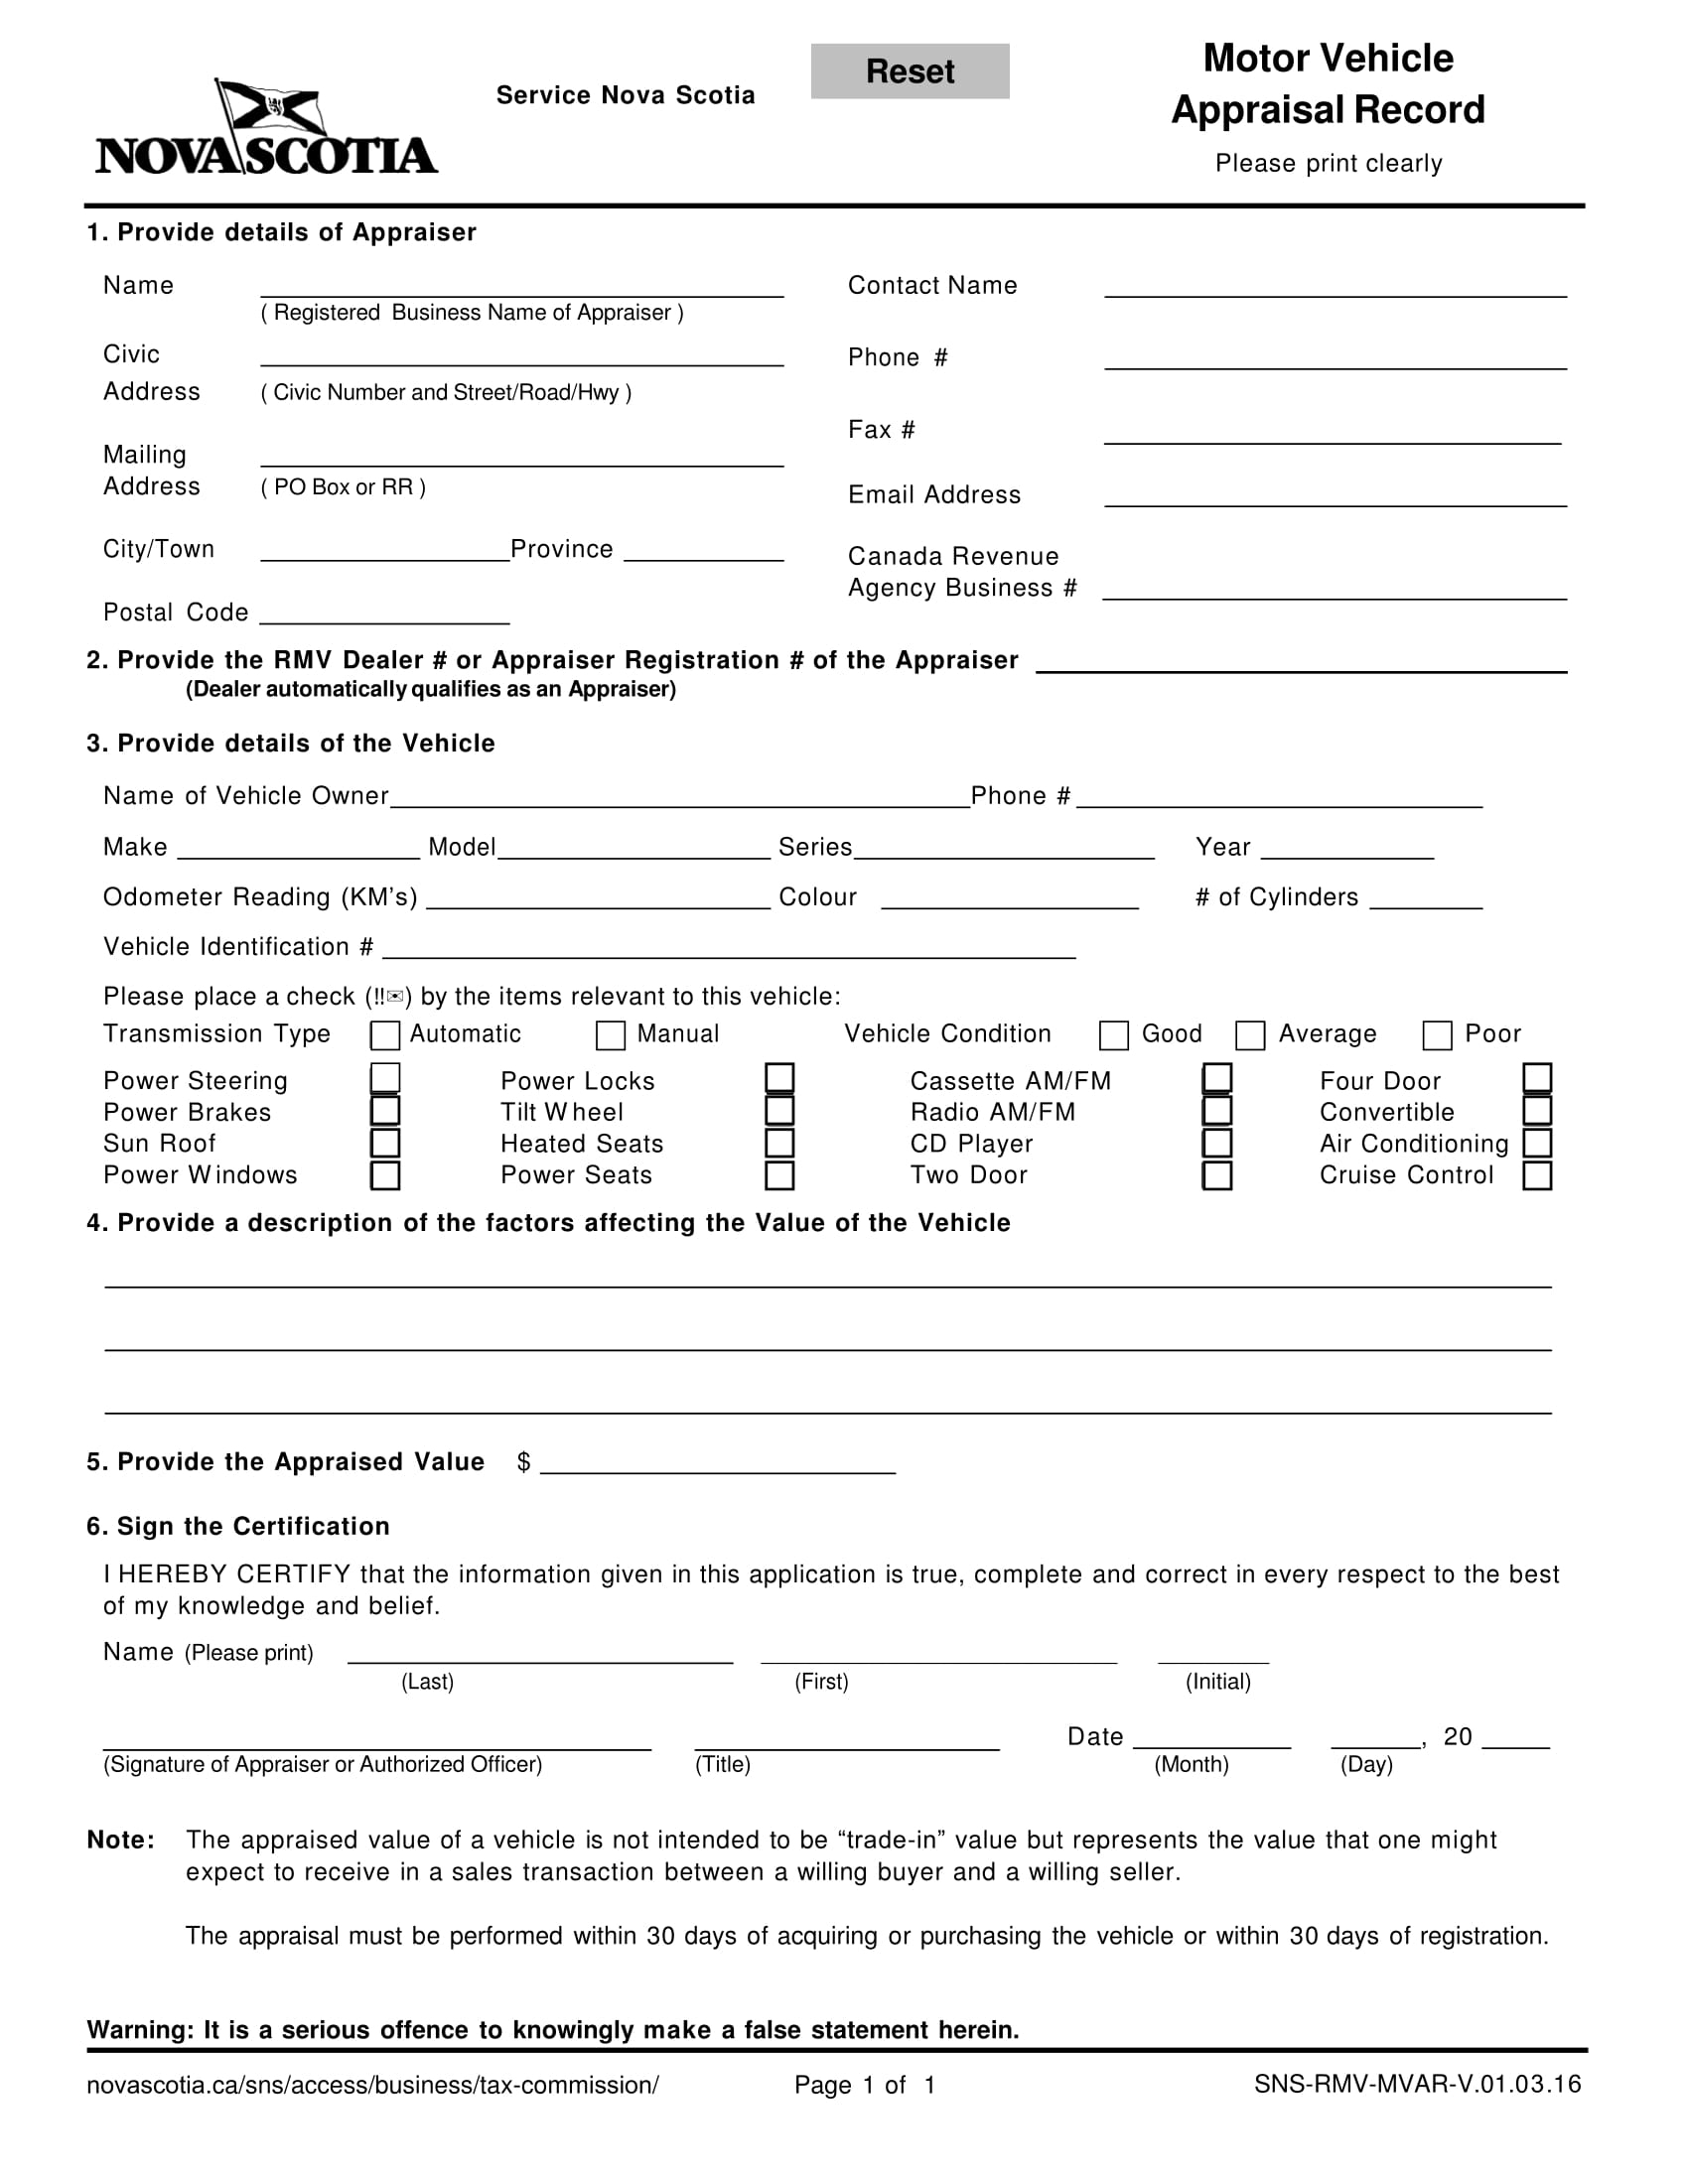 motor vehicle appraisal evaluation form 1